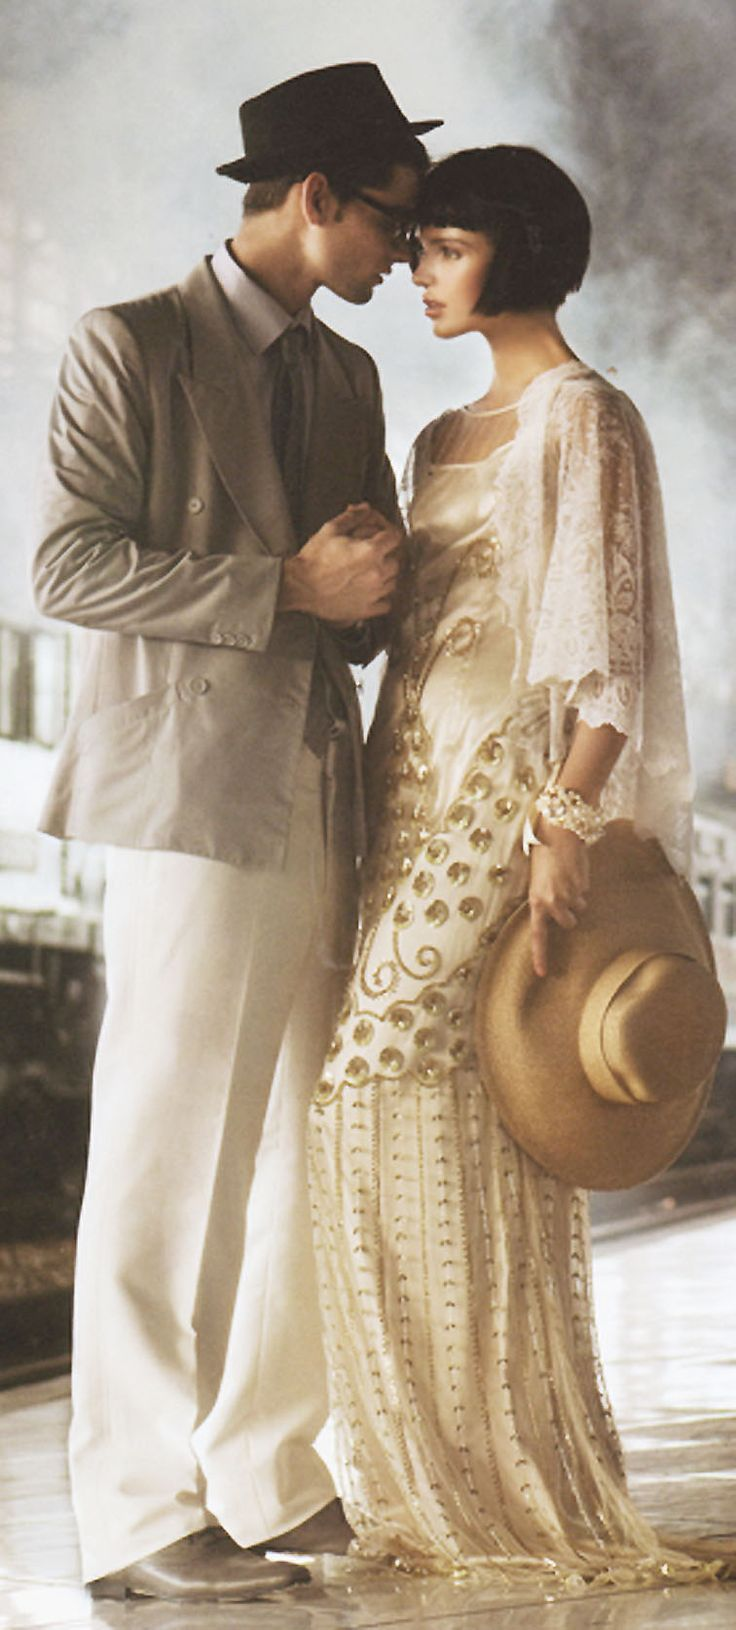 #wedding #style #Ar'deCo #glamorous #dress #bride #groom to read more about (rus):http://heavenlyday-wedding.tumblr.com/  FB: Heavenly Day